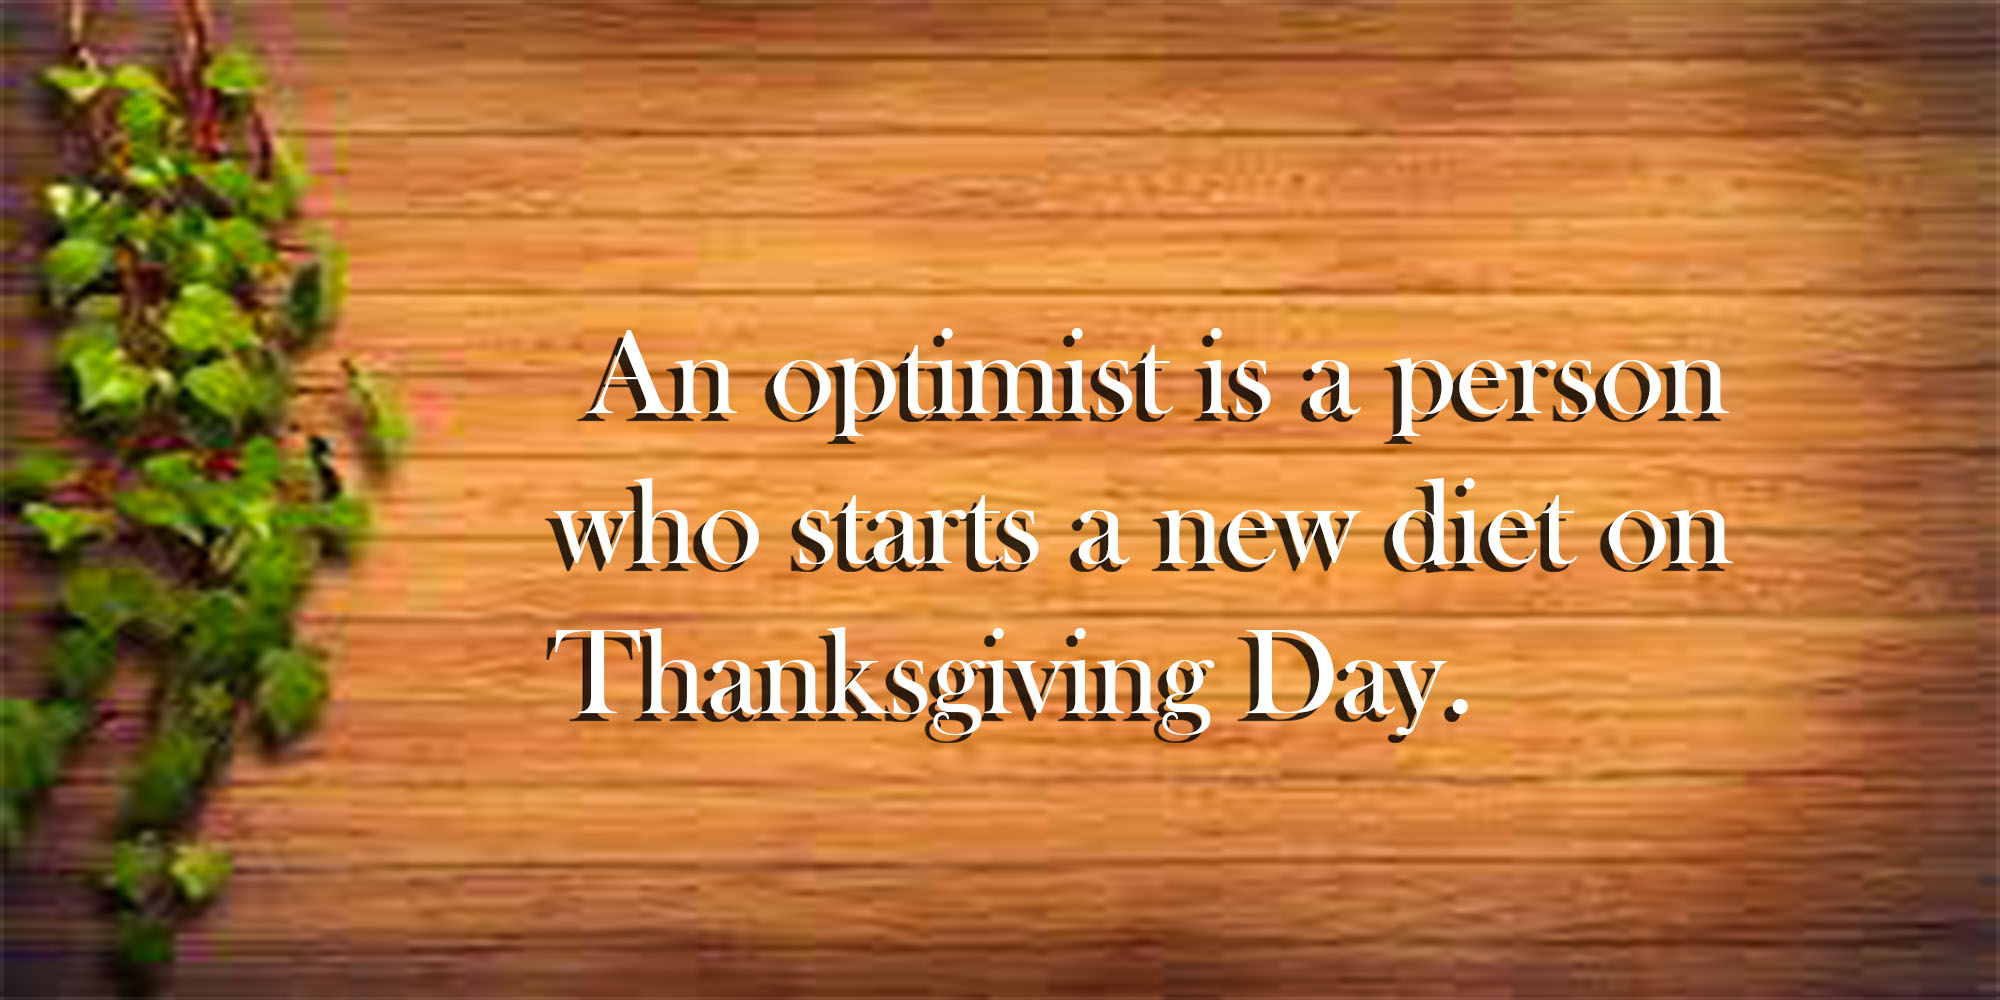 Thanksgiving Day 2021 Quotes,